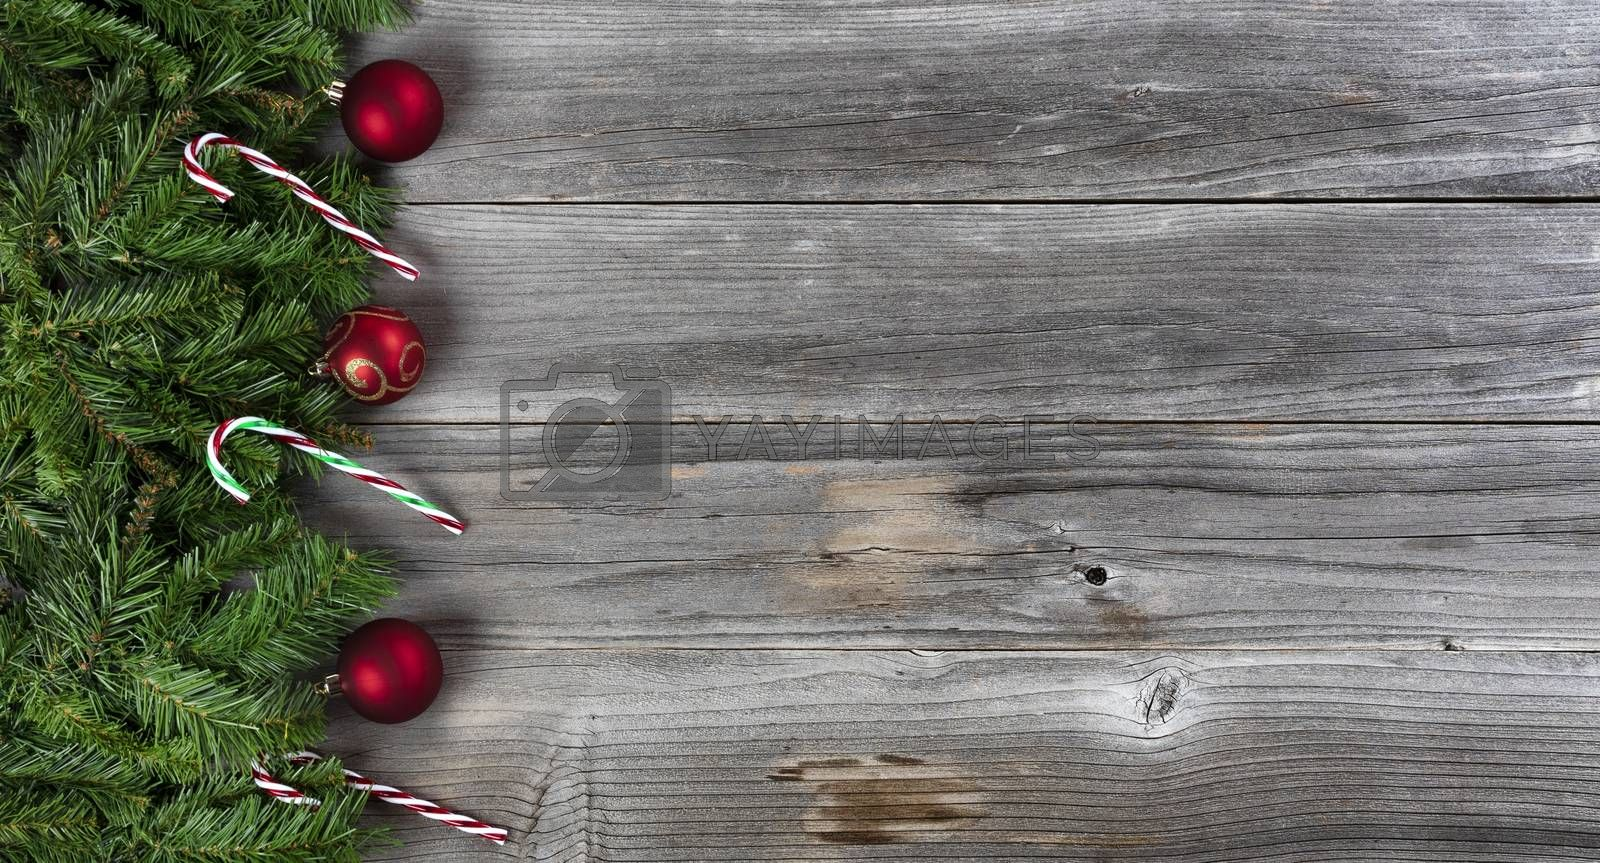 Merry Christmas and Happy New Year holiday concept with decorations on left side of weathered wooden boards